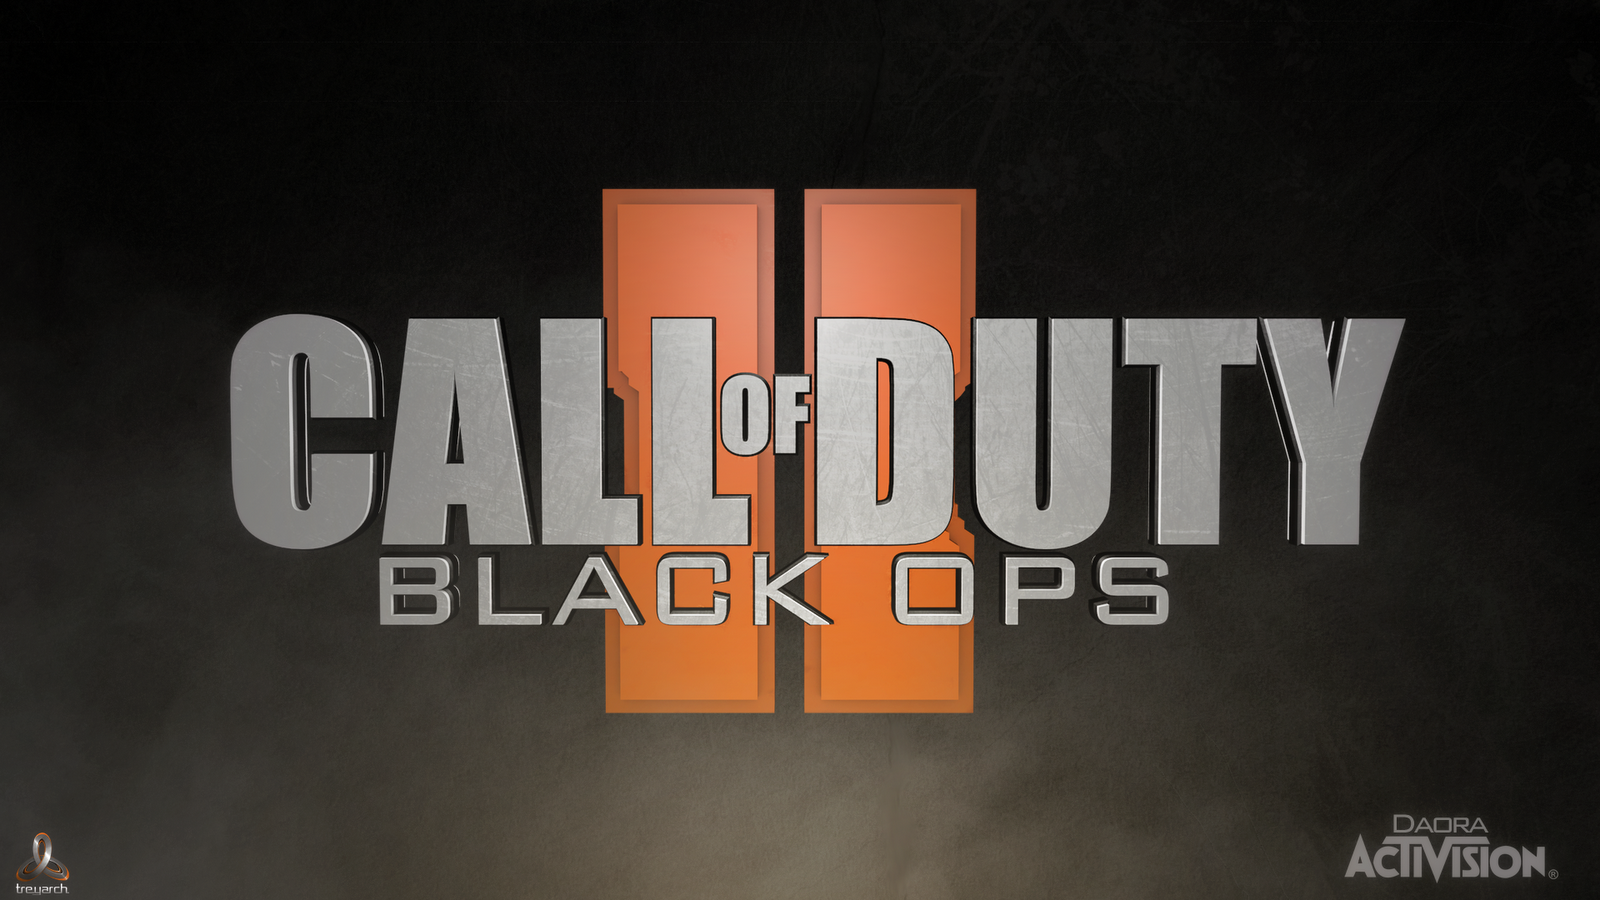 Best Call Of Duty Black Ops 2 1600x900 px Wallpaper by Alice Becher